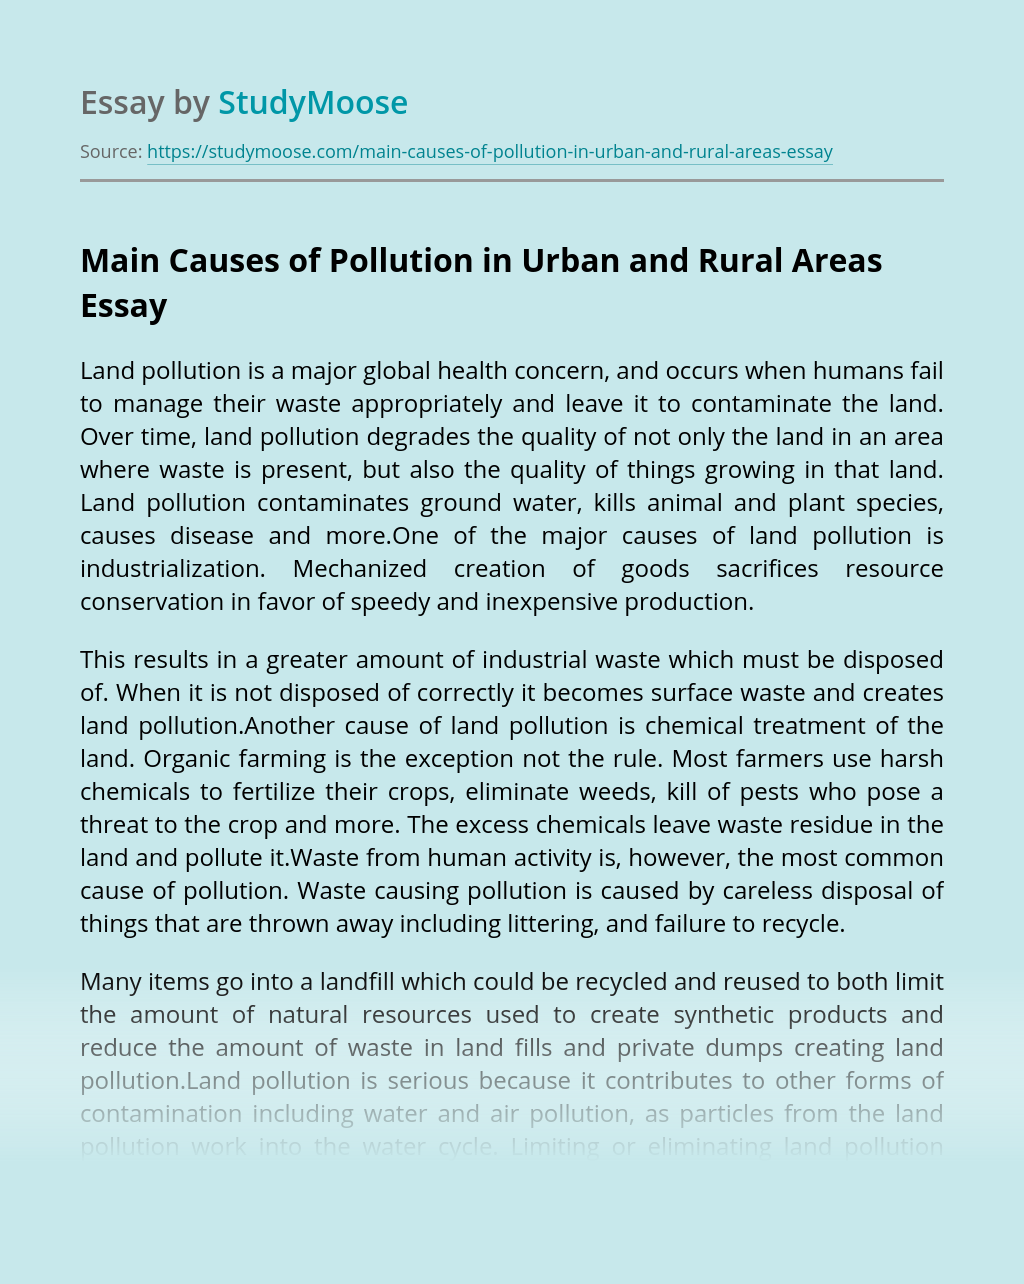 Main Causes of Pollution in Urban and Rural Areas